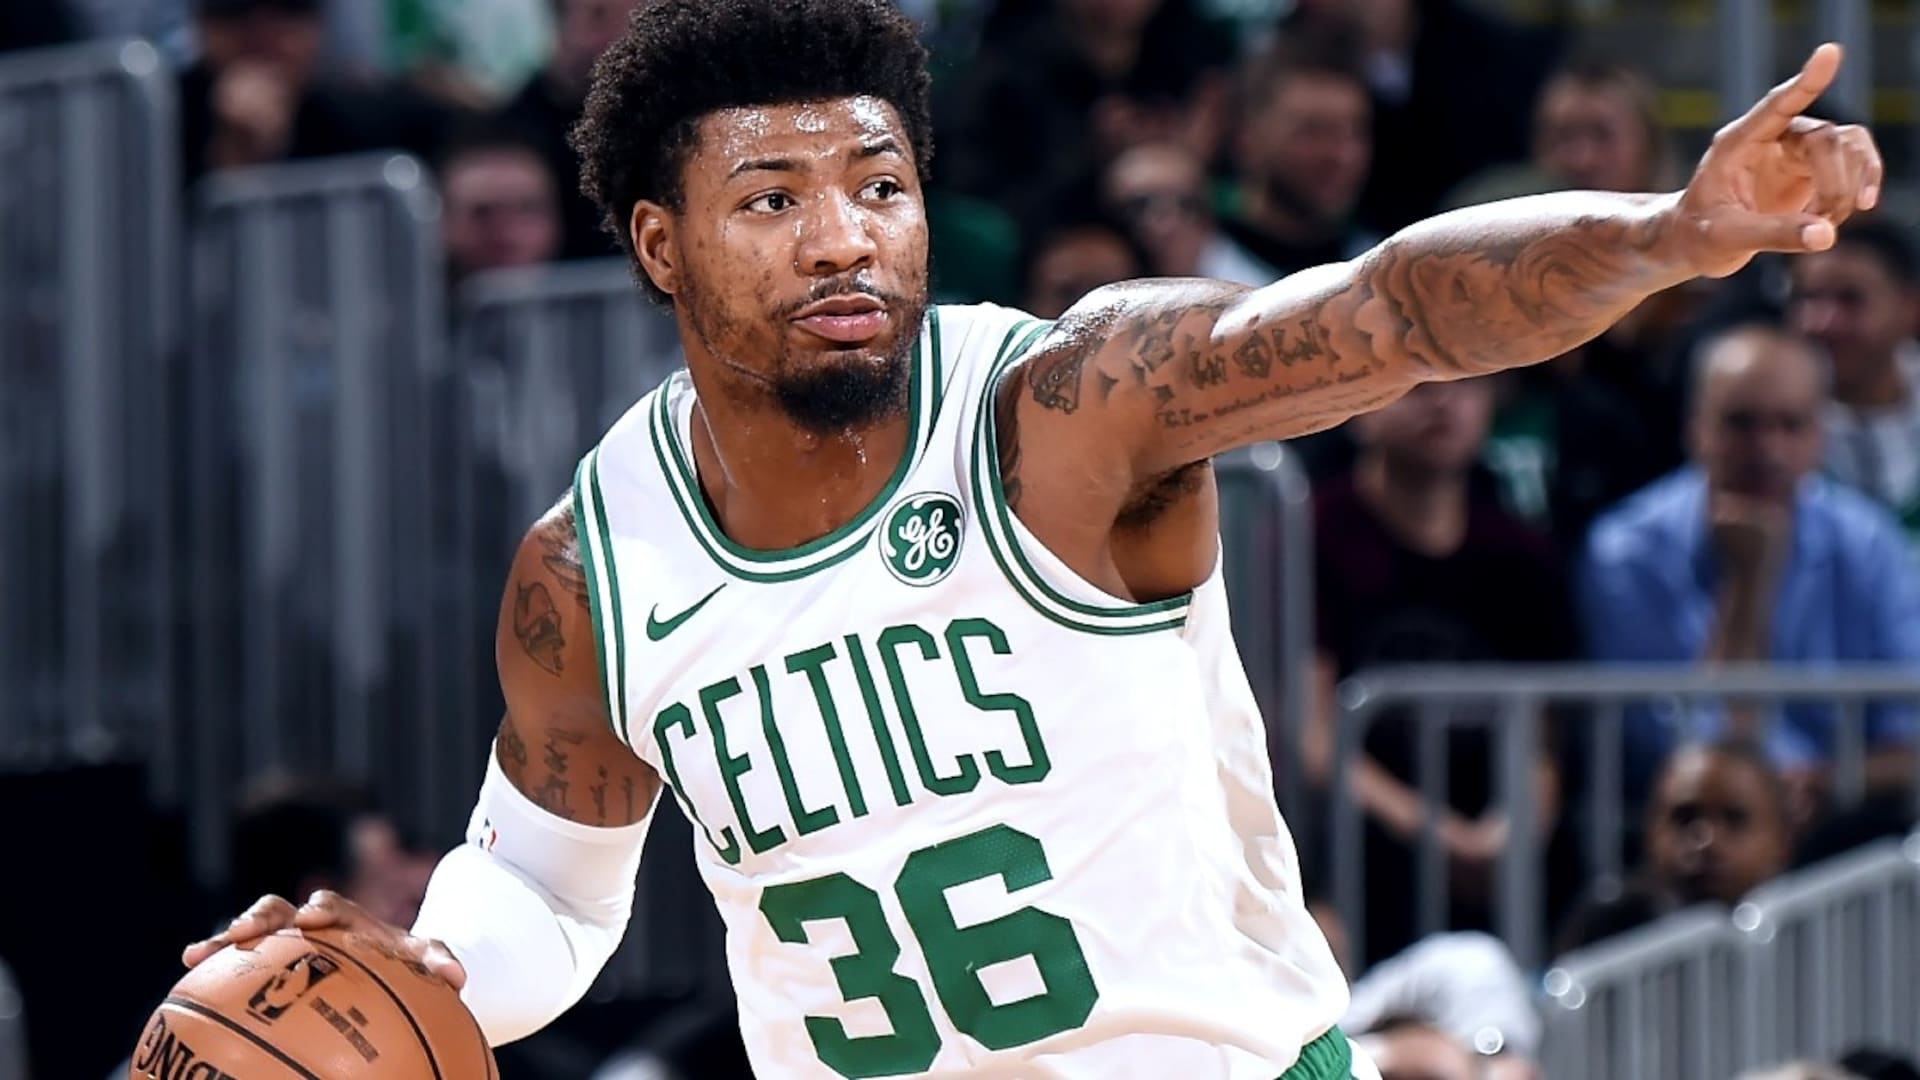 Marcus Smart's foundation to provide meals to frontline workers throughout New England